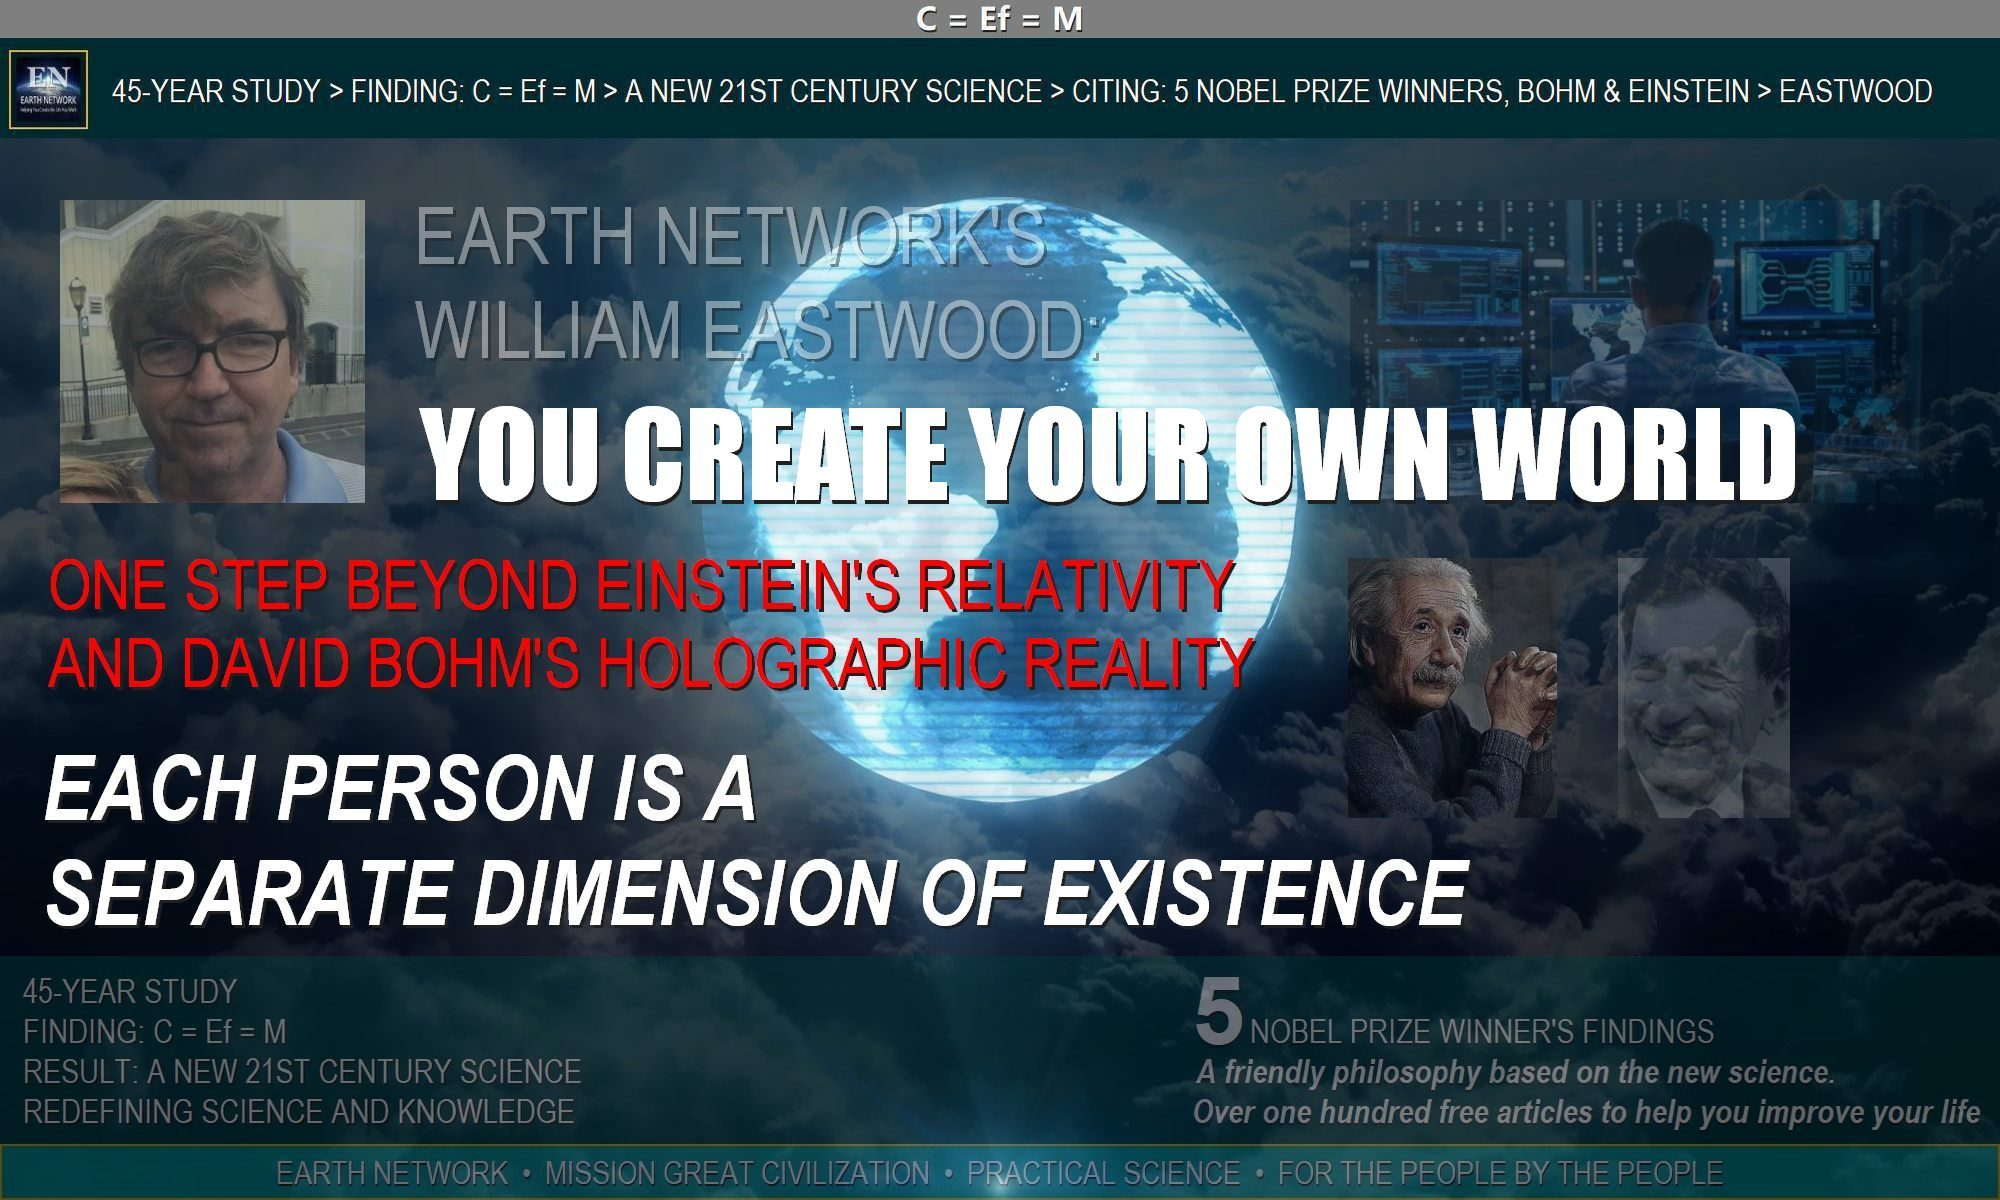 William Eastwood goes beyond Einstein & Bohm to give you the truth about reality. Your world is a projection you create & can change in any way you want.